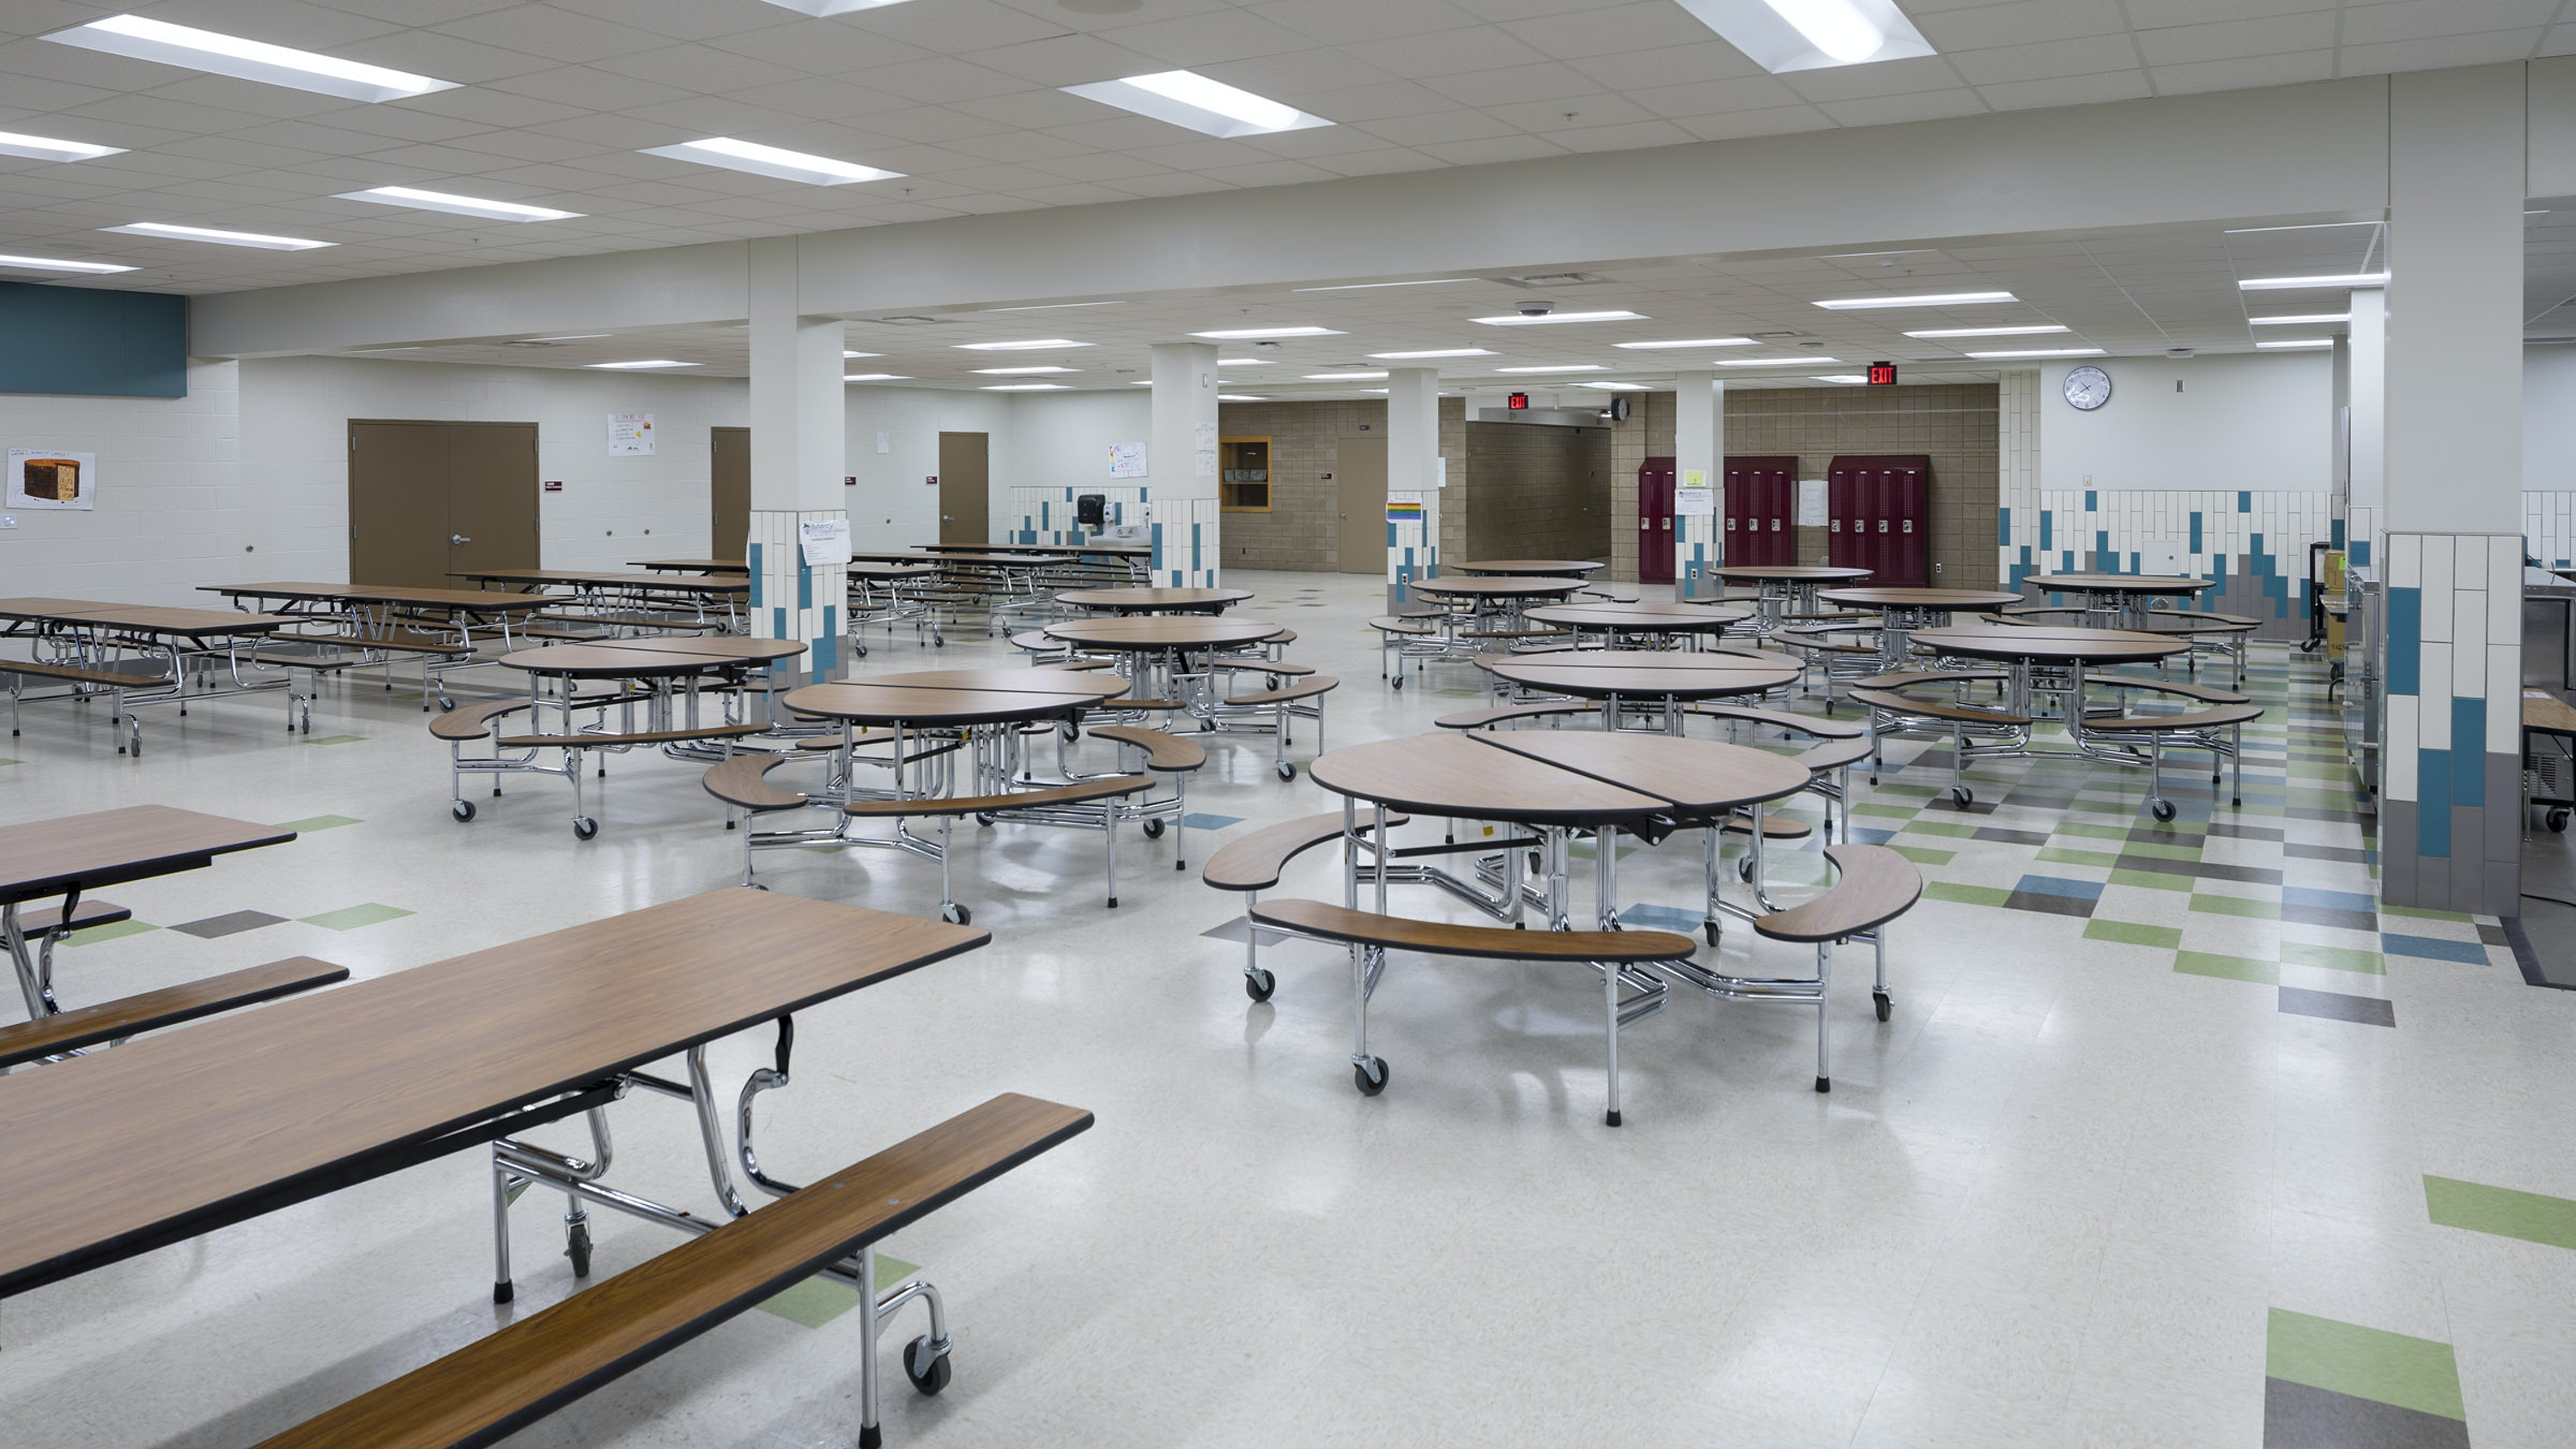 Marcy open elementary2